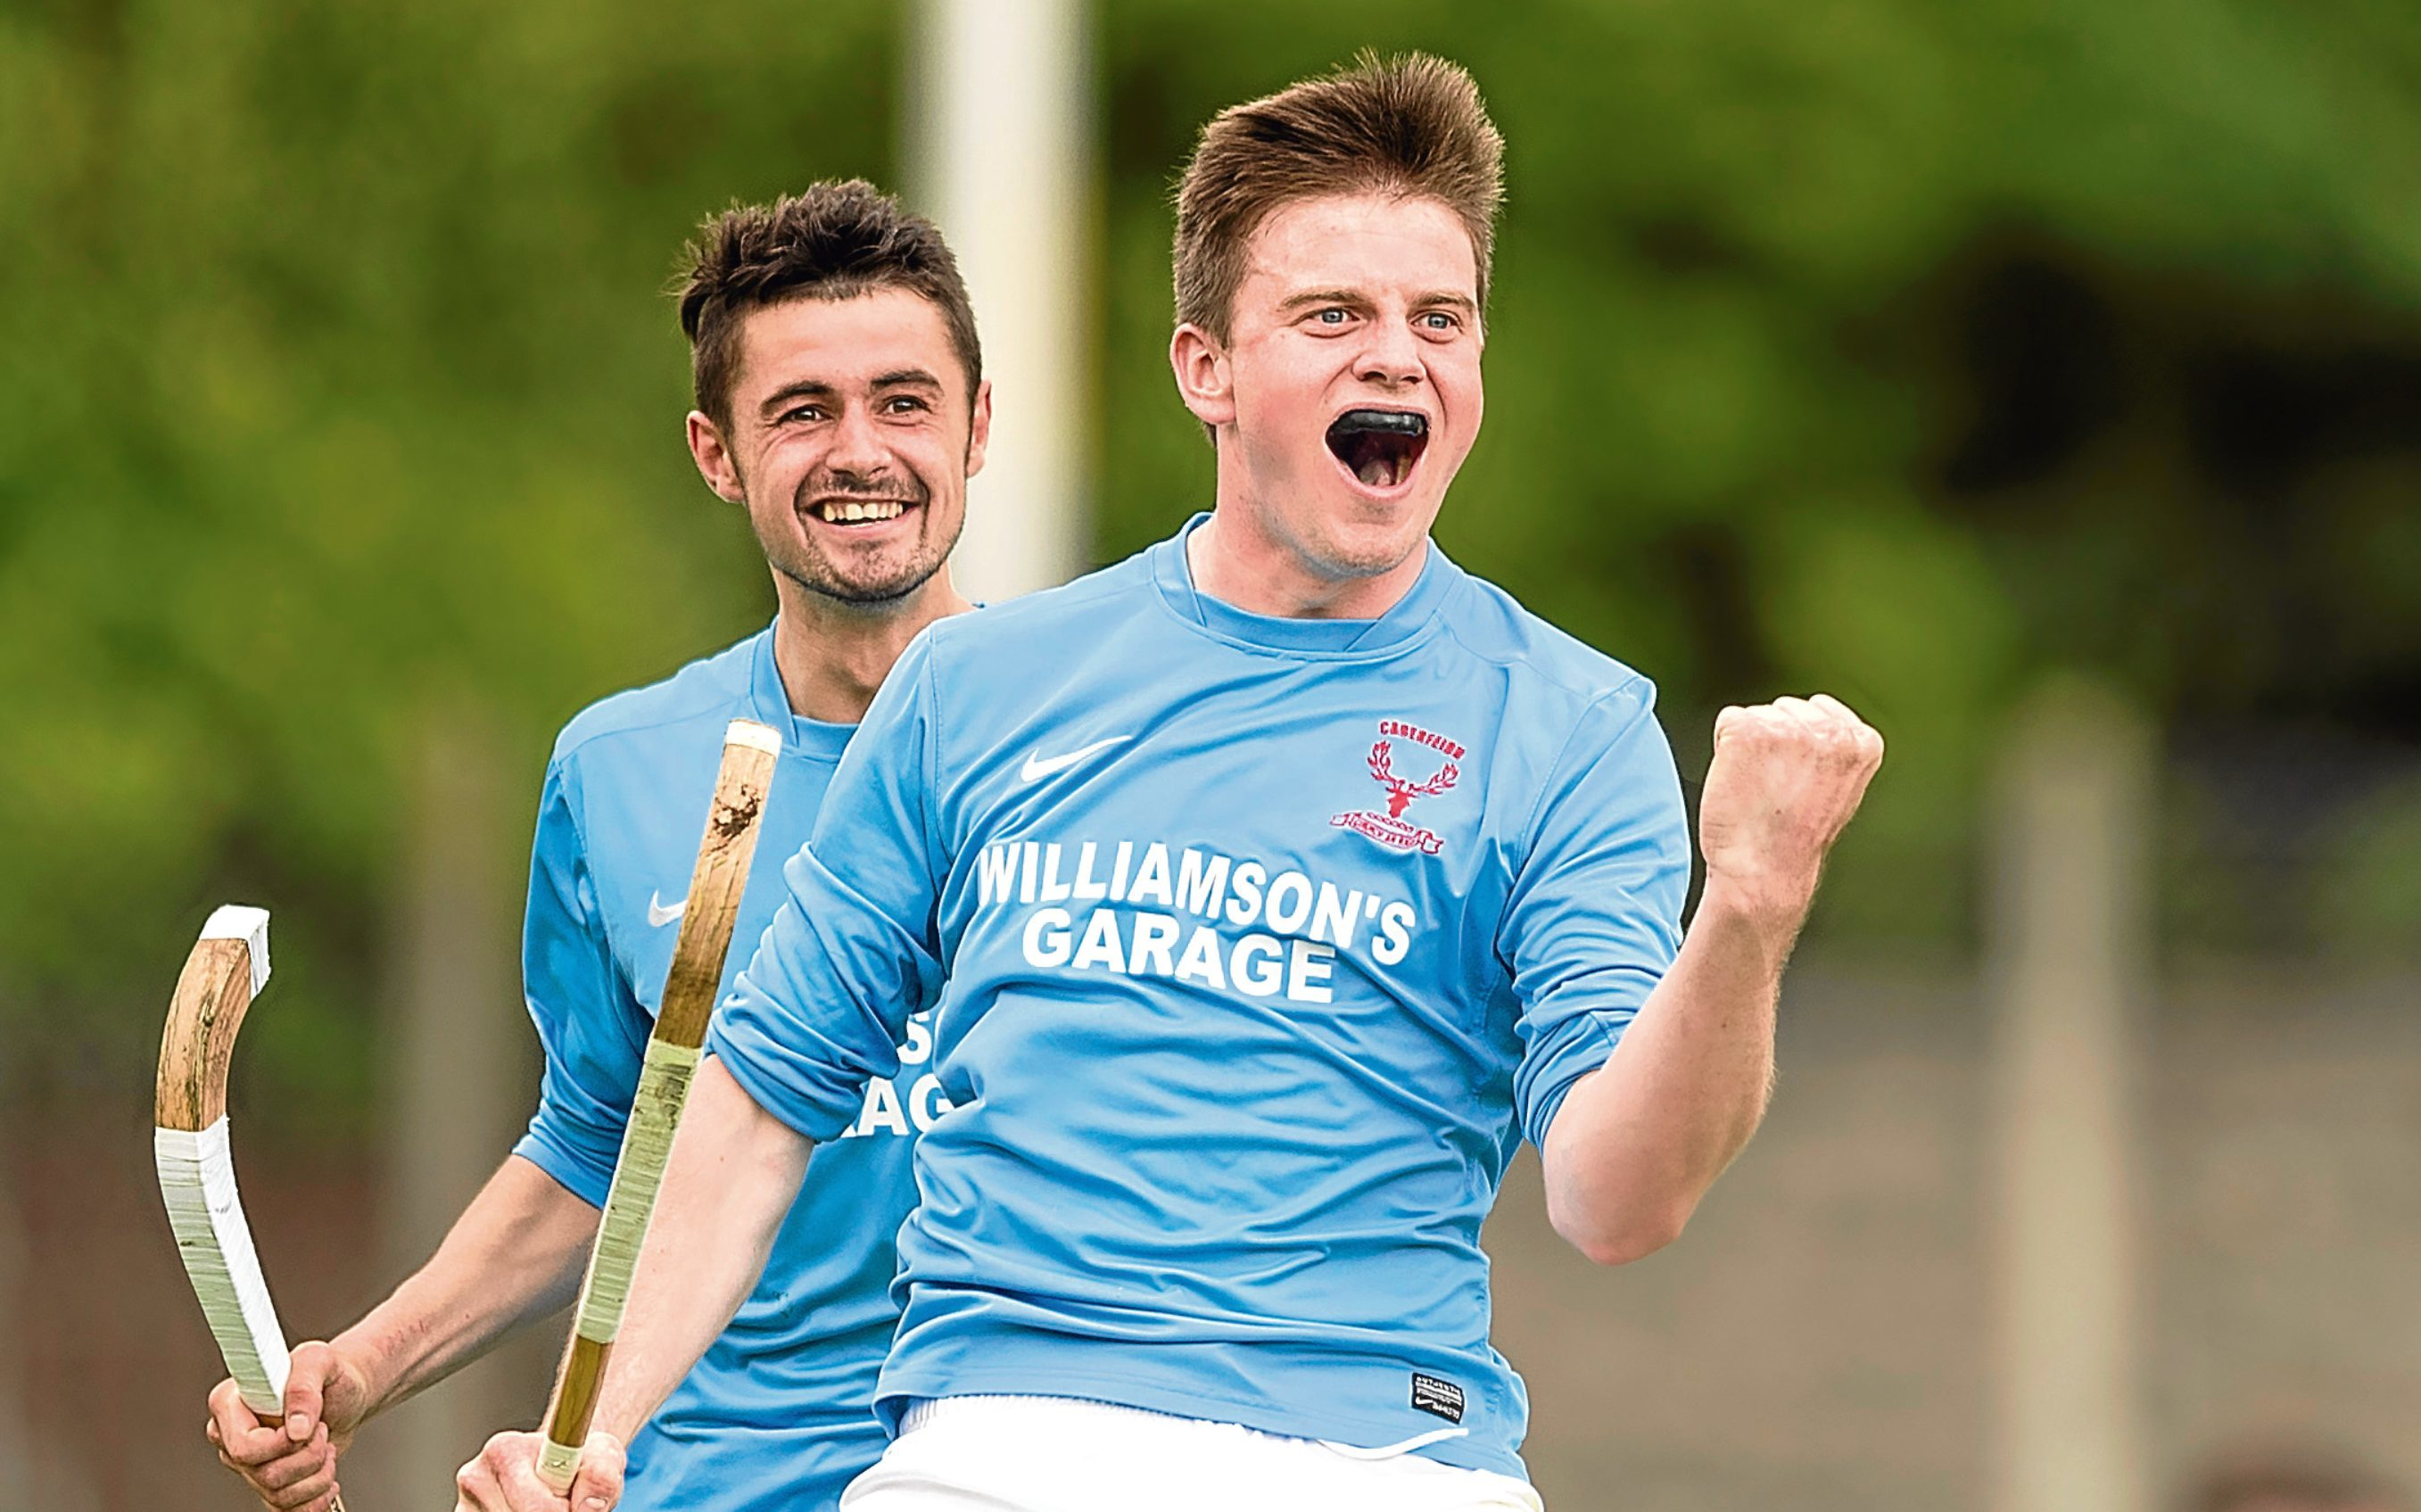 Caberfeidh's Craig Morrison with the third goal of his hat trick.  Balliemore Cup Final, Caberfeidh v Fort William, played at Blairbeg, Drumnadrochit.